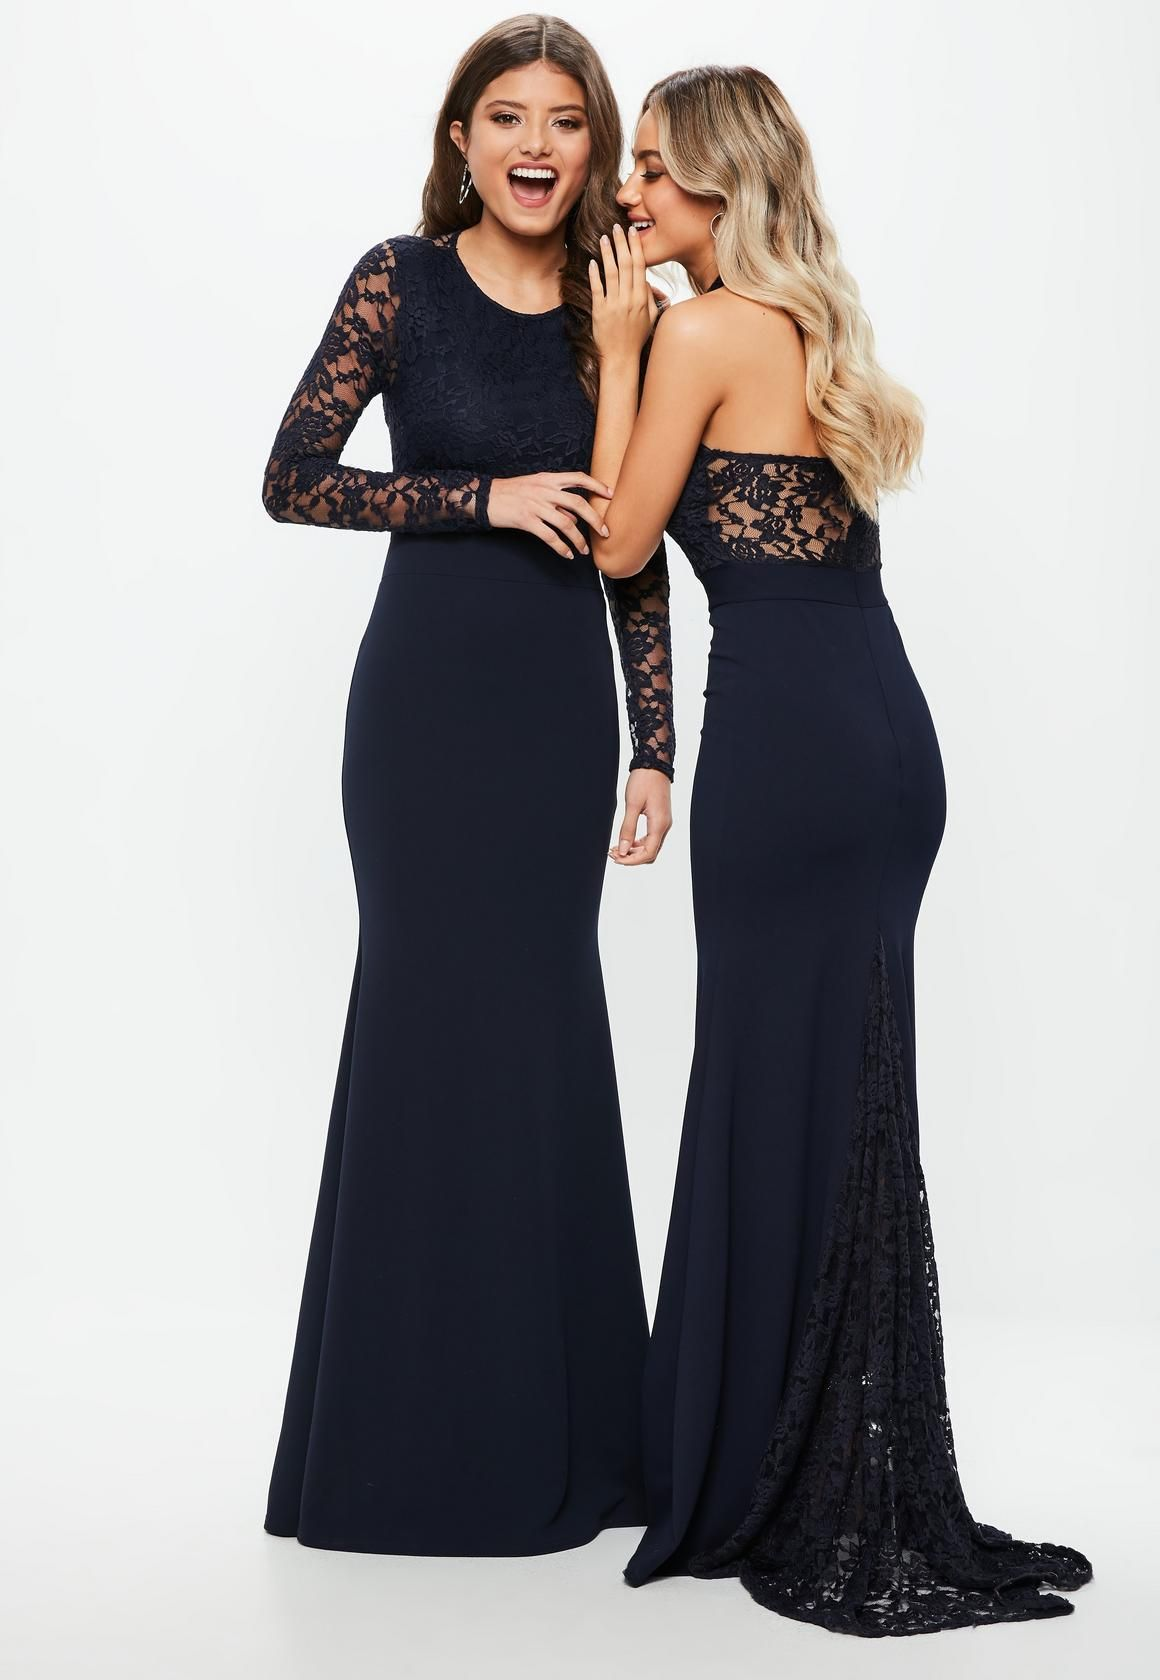 527a9b99c71 Missguided - Bridesmaid Navy Round Neck Lace Insert Fishtail Maxi Dress